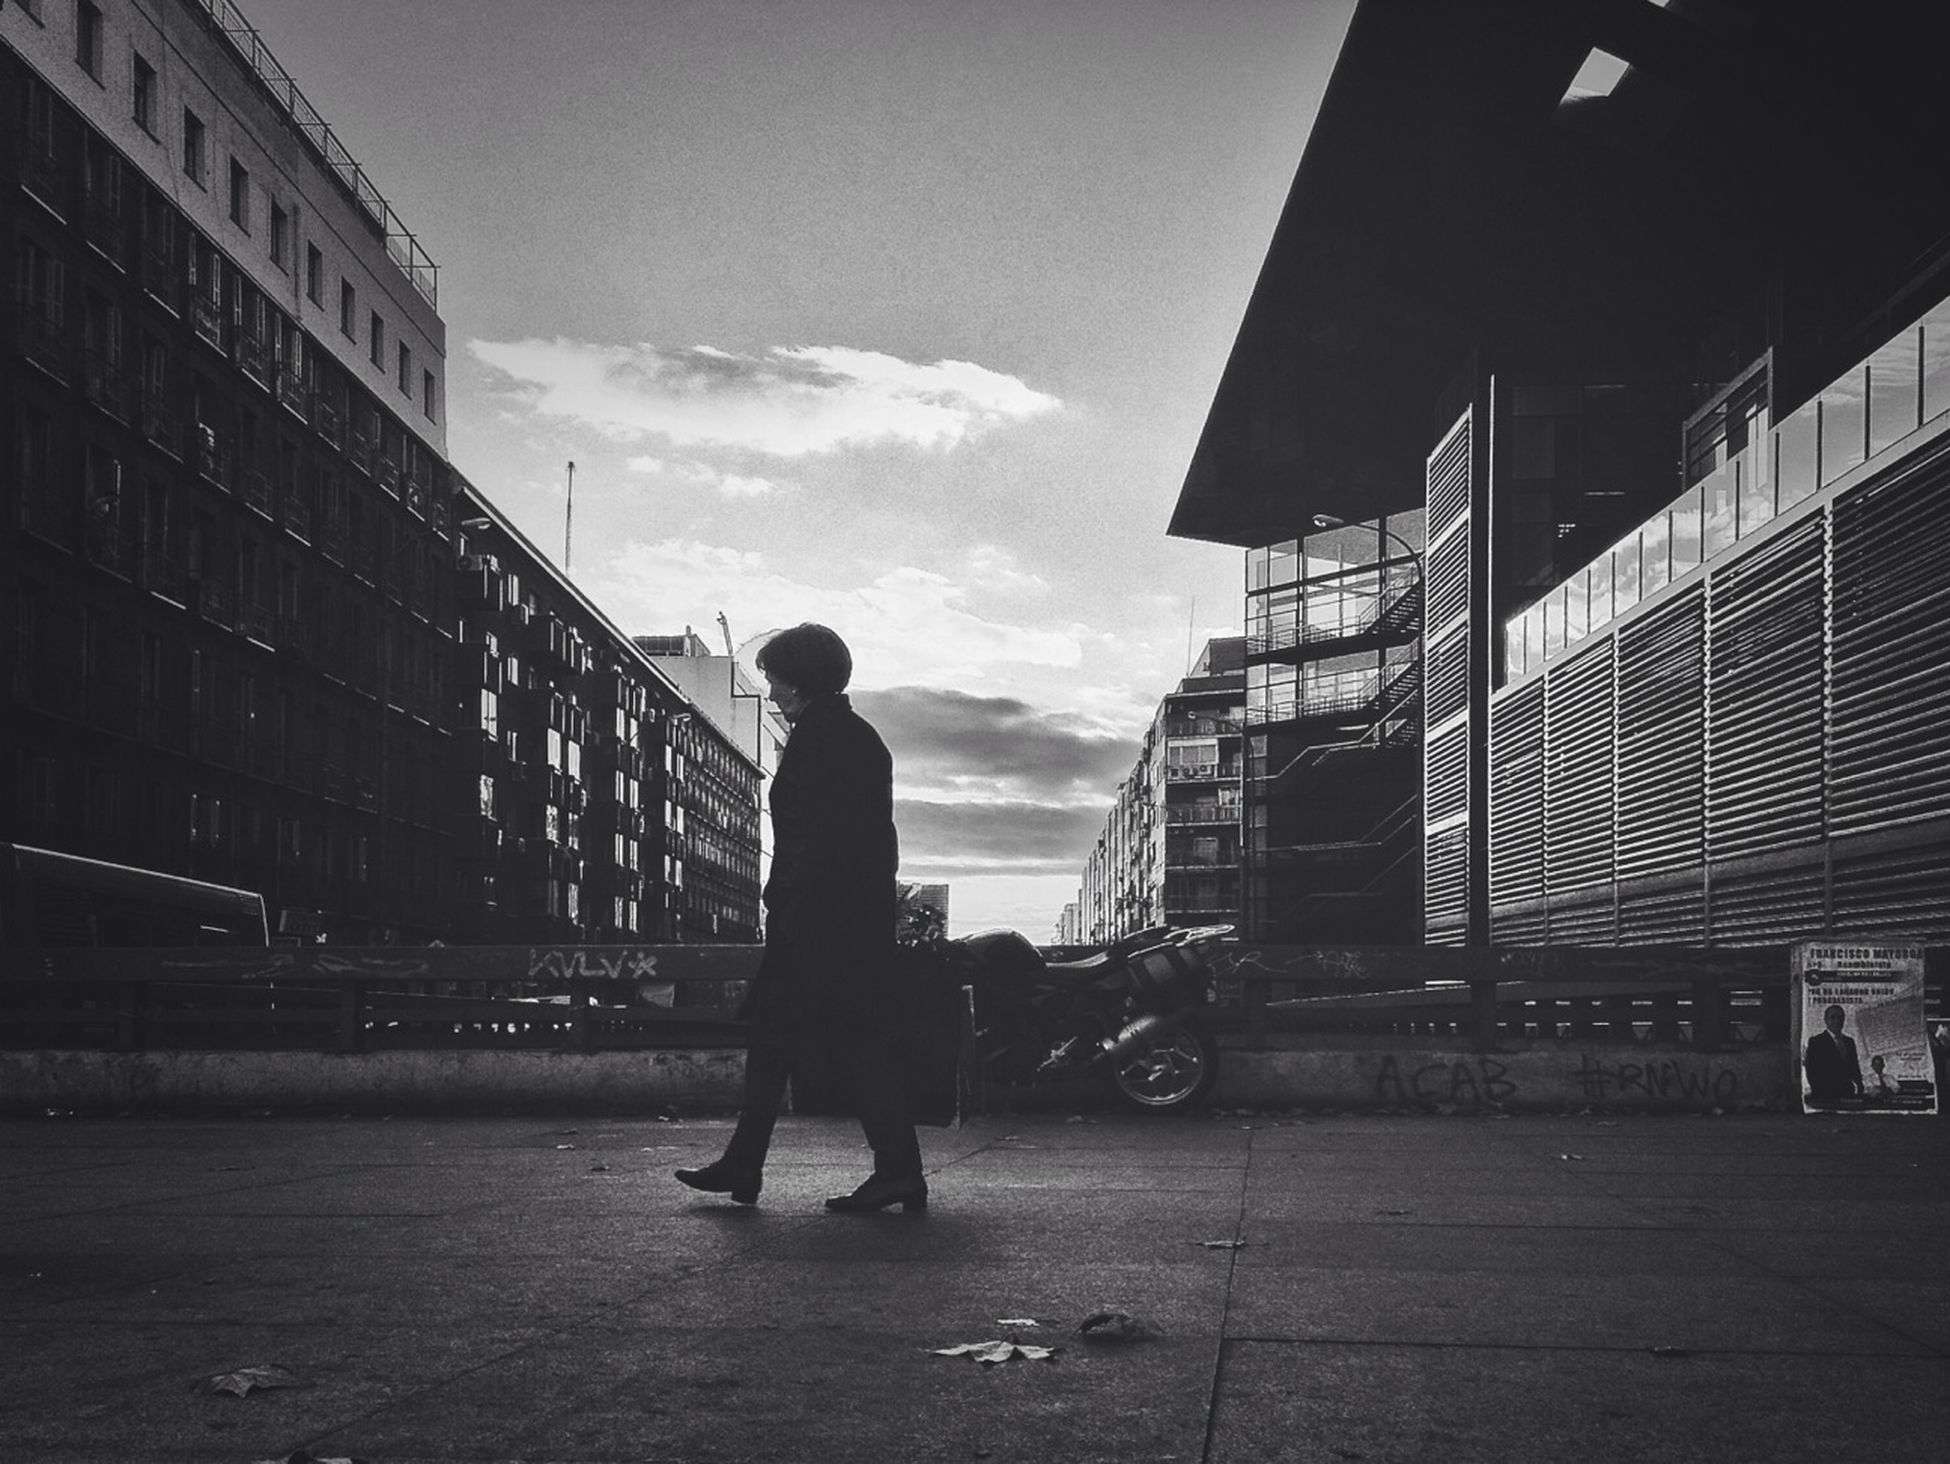 architecture, built structure, building exterior, full length, sky, lifestyles, walking, men, rear view, leisure activity, cloud - sky, person, city, standing, cloud, city life, street, silhouette